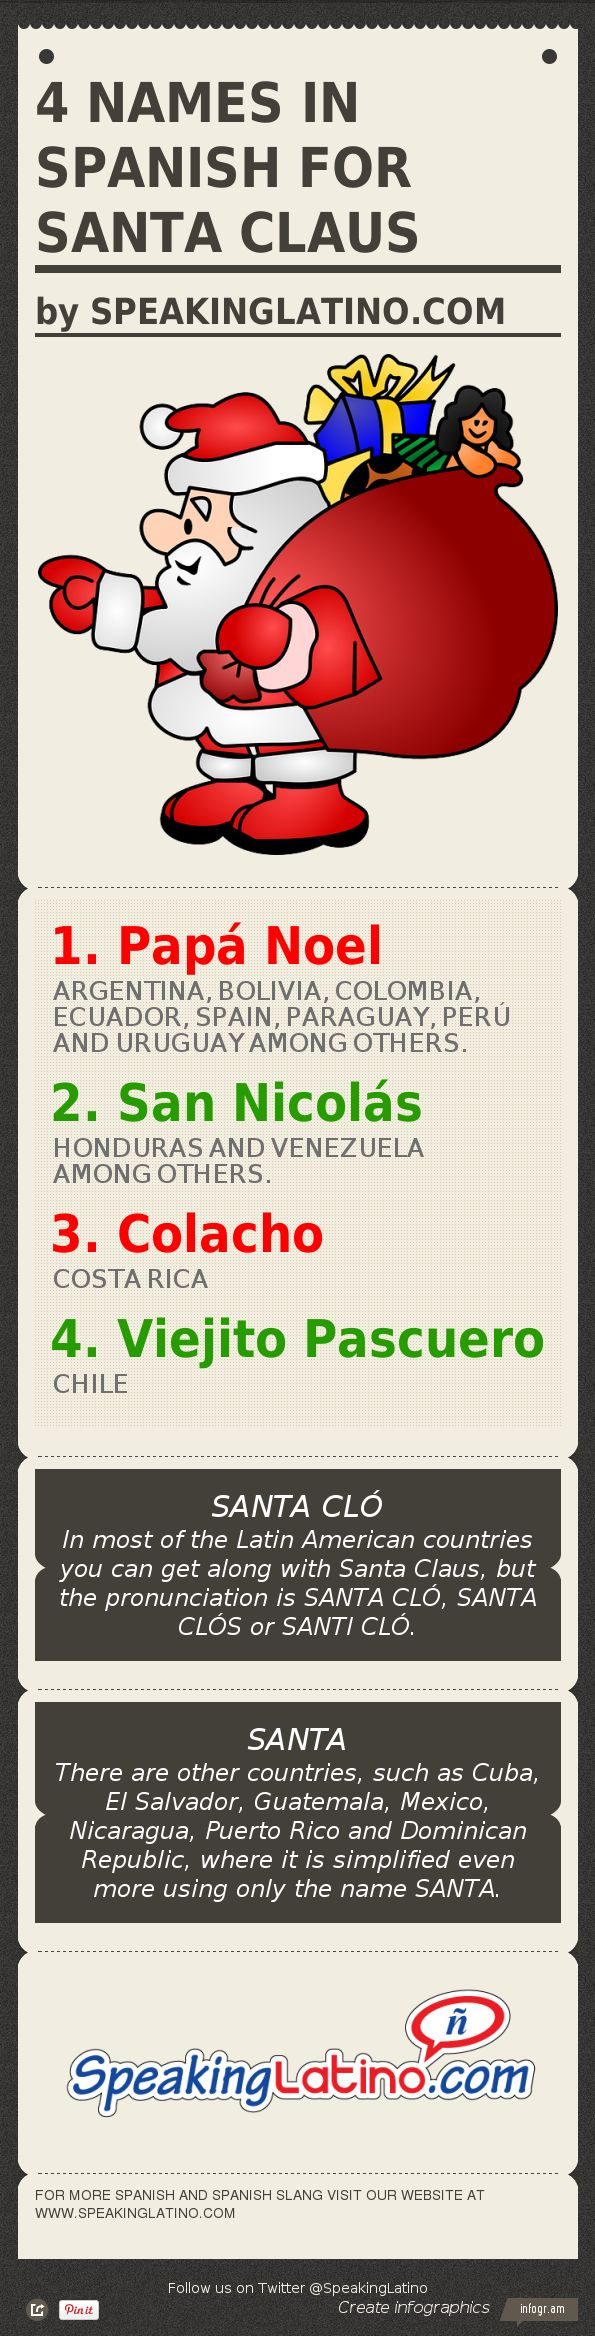 Infographic: 4 Names in Spanish for SANTA CLAUS